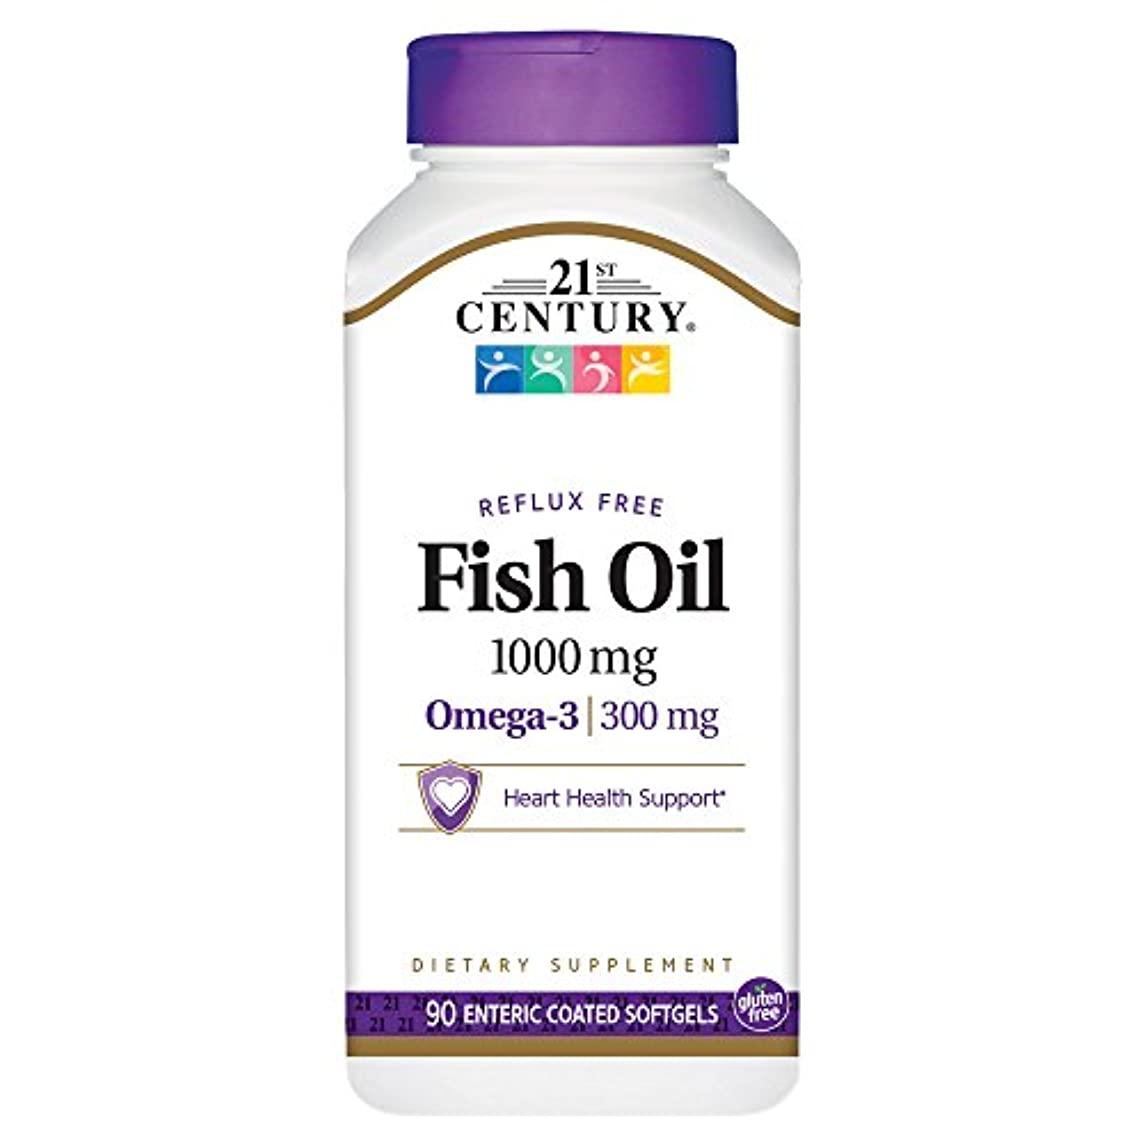 盟主フラップ証人21st Century Health Care, Fish Oil, 1000 mg, 90 Enteric Coated Softgels